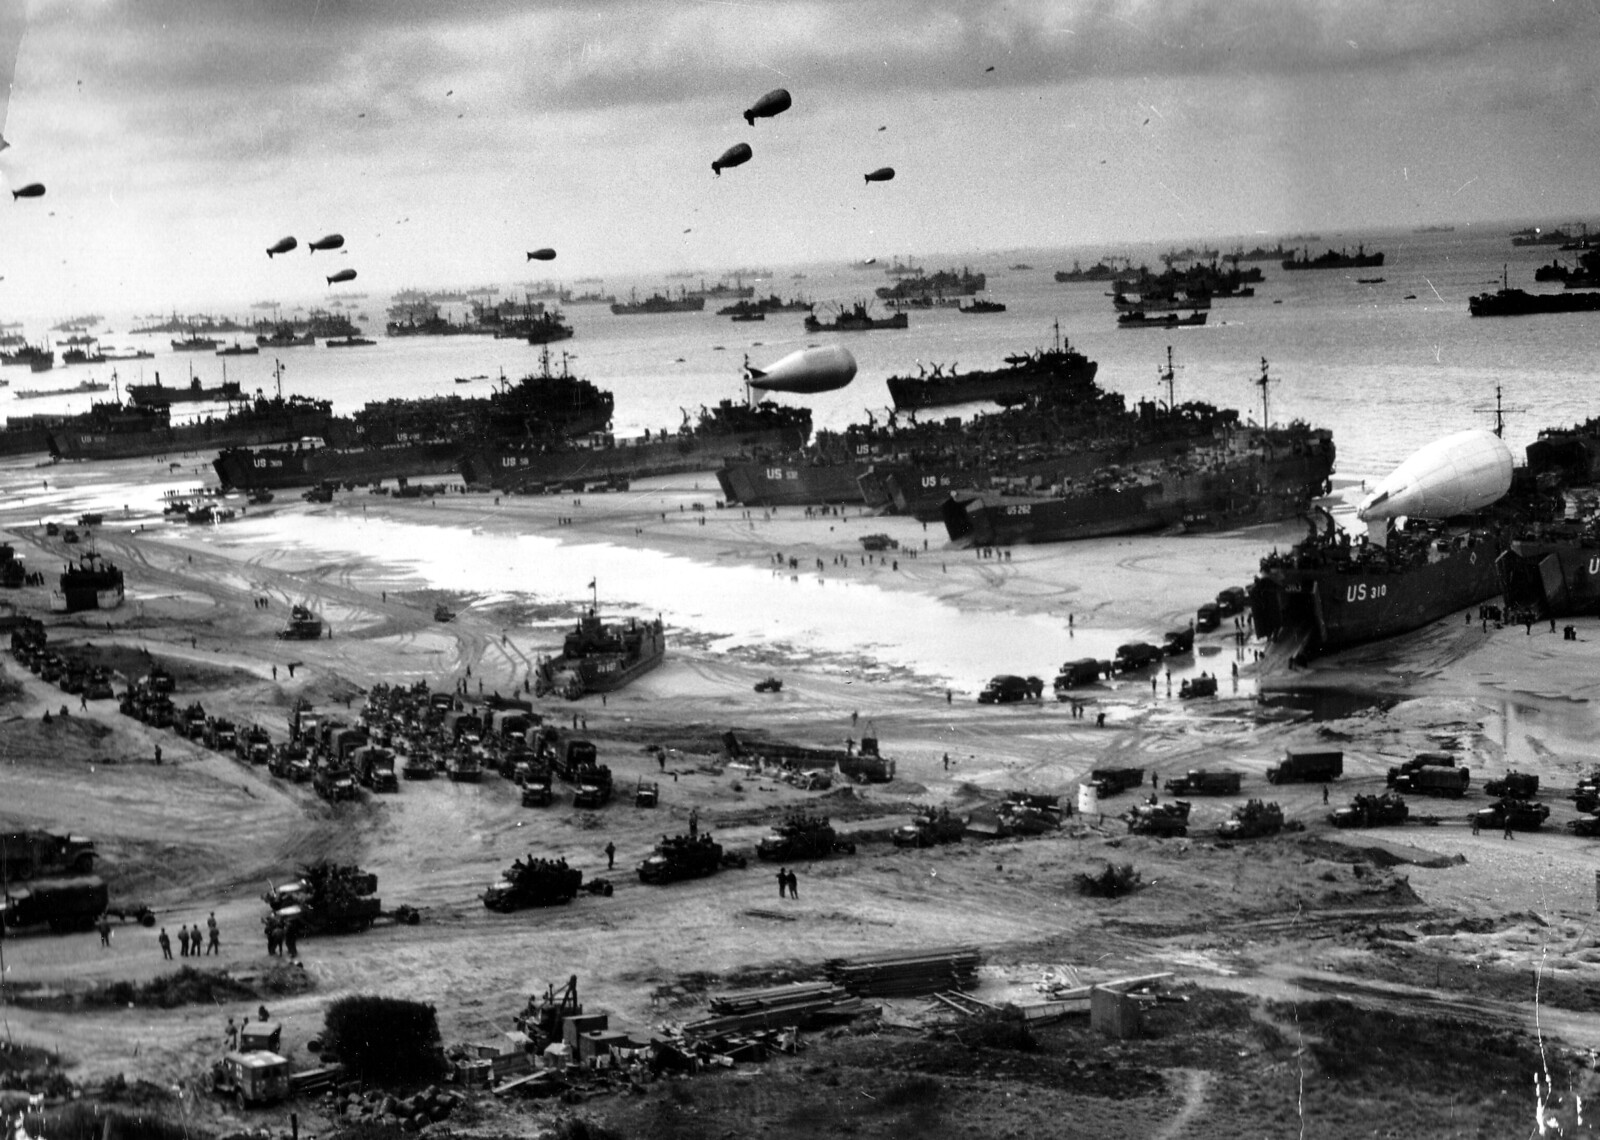 Landing ships putting cargo ashore on one of the invasion beaches, at low tide during the first days of the operation, June 1944